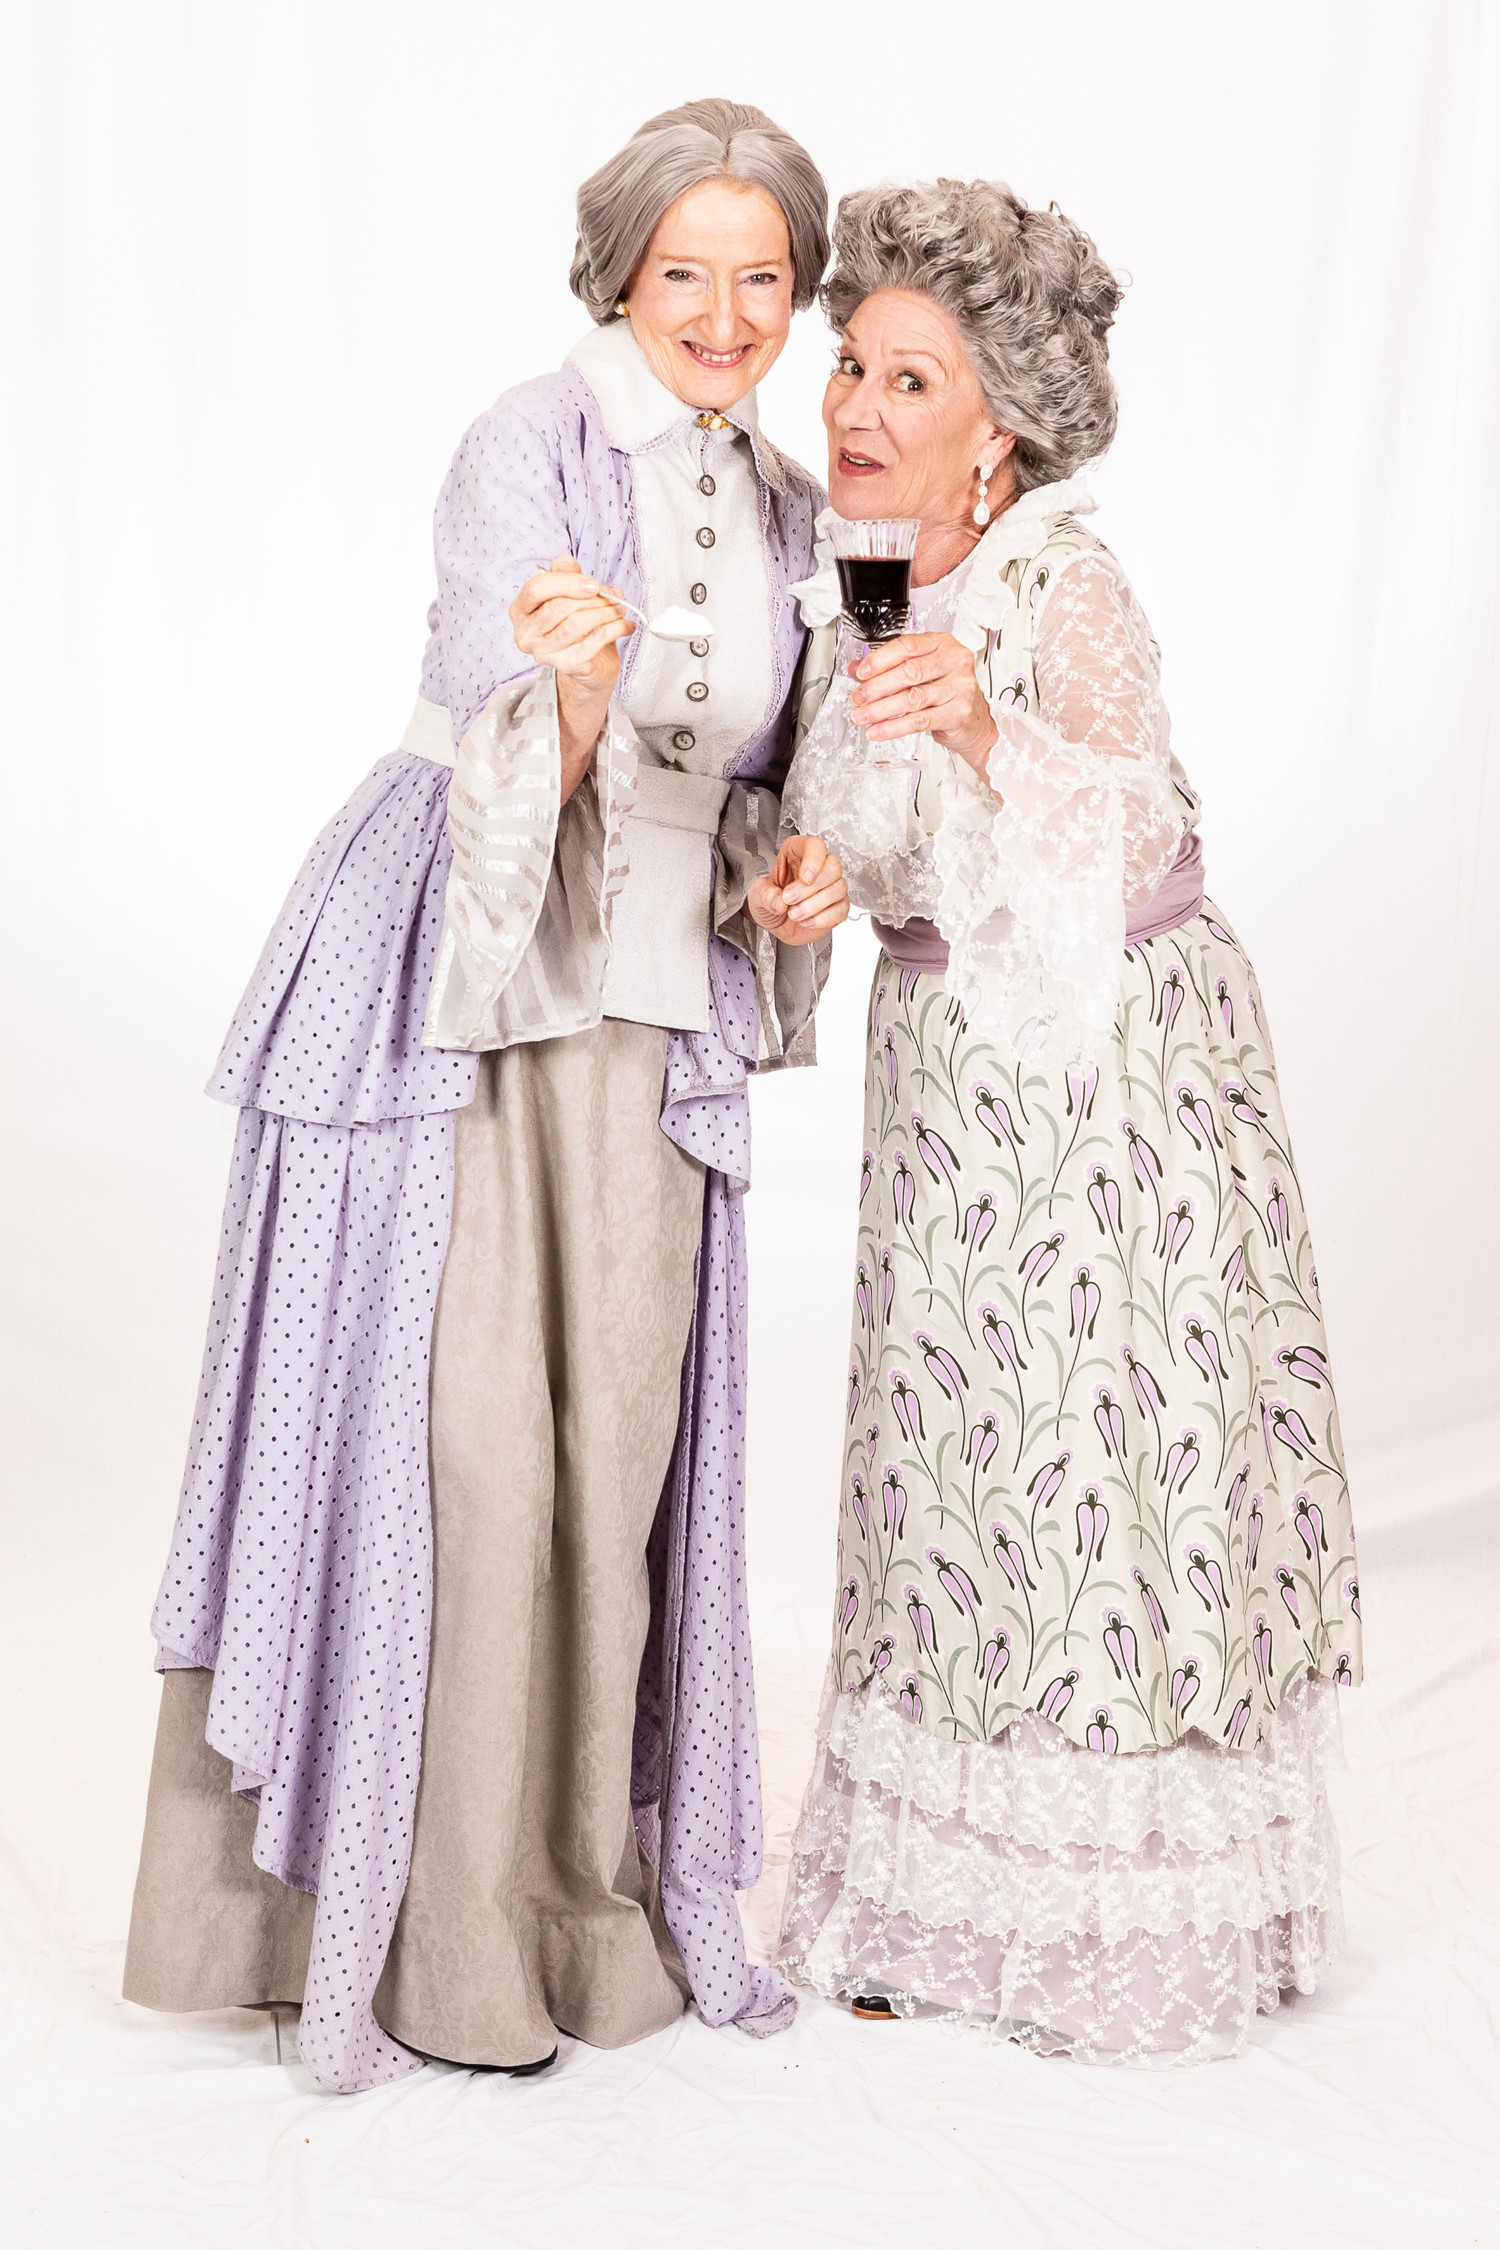 BWW Interview: Travis W. Walter & Mary Robin Roth of ARSENIC AND OLD LACE at Meadow Brook Theatre Say It's Filled with Laughter and Surprises!